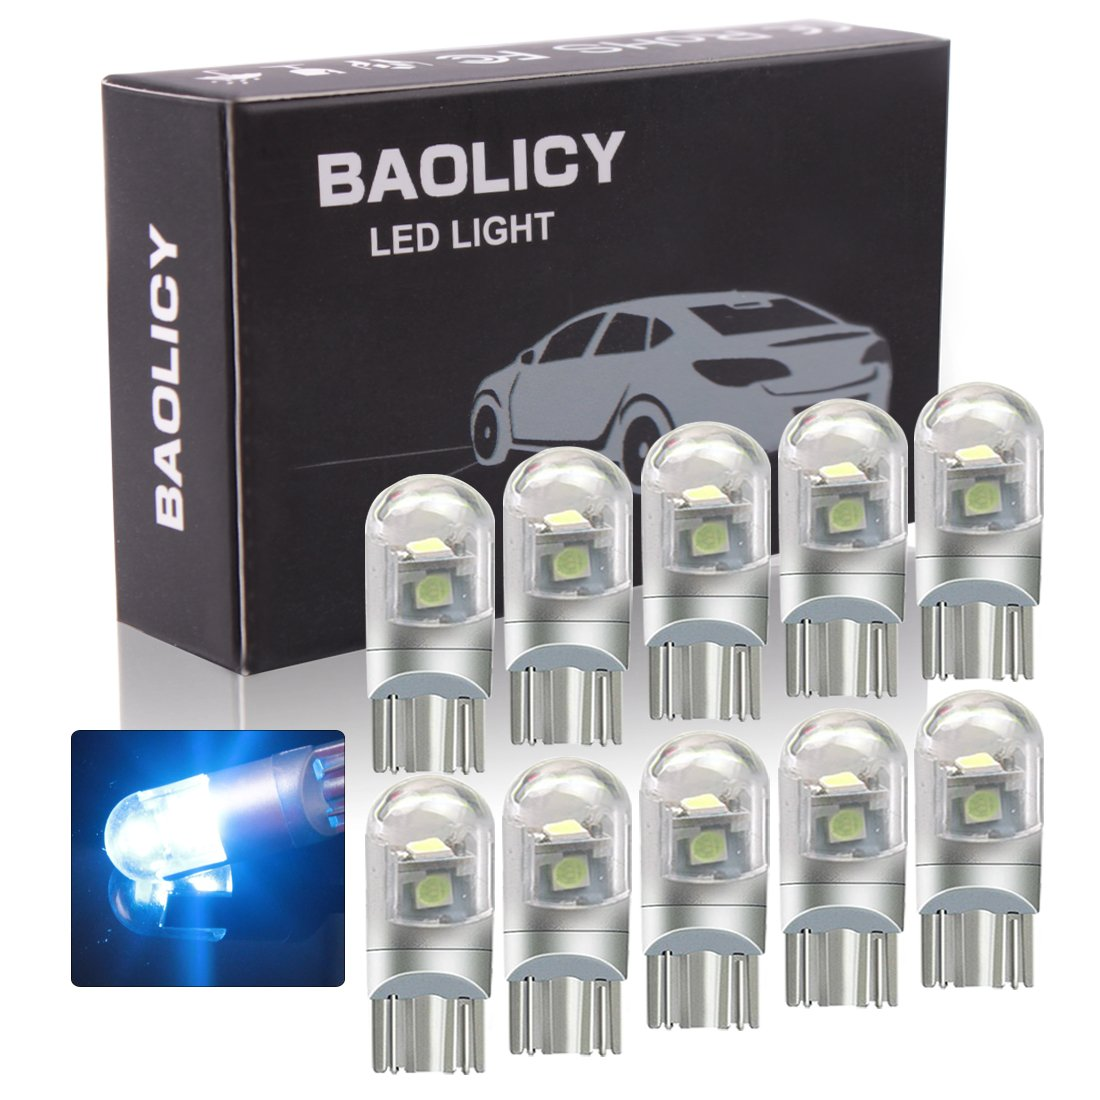 T10 LED Light Bulb, W5W Bulb, 194 LED Bulb, 3030 Chip 3-SMD Replacement for Car Interior Dome Map Reading Door License Plate Turn Signal Trunk Clearance Compact Wedge Parking Side Dashboard Light(10PCS 3White) BAOLICY